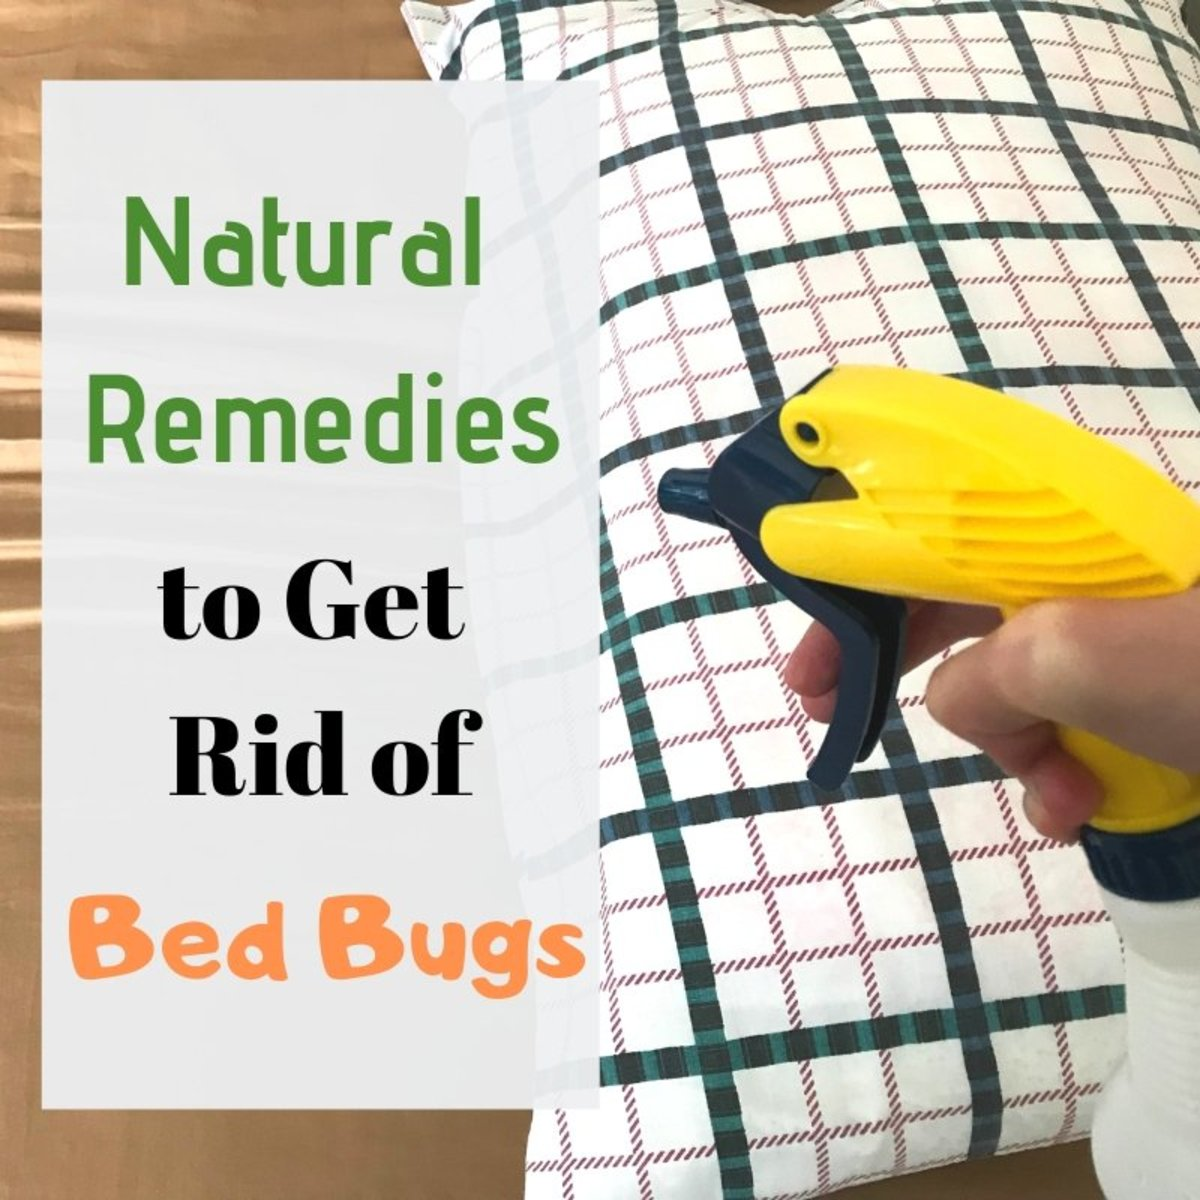 12 Home Remedies for Bed Bugs   Dengarden